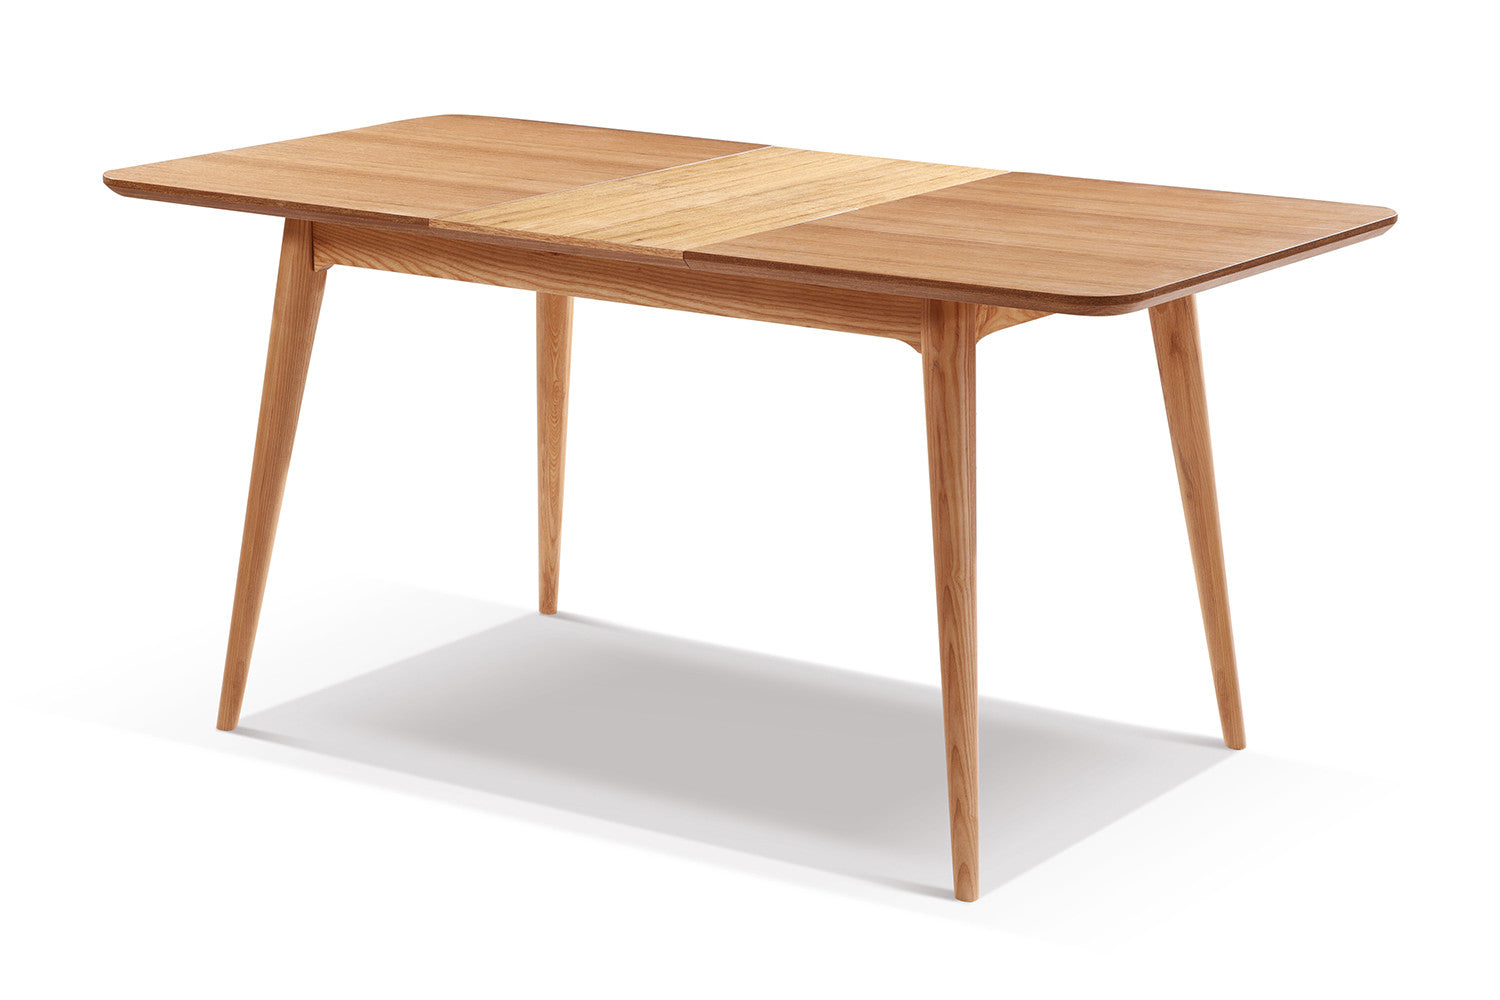 Table de salle manger extensible en bois adda dewarens for Xooon table salle a manger